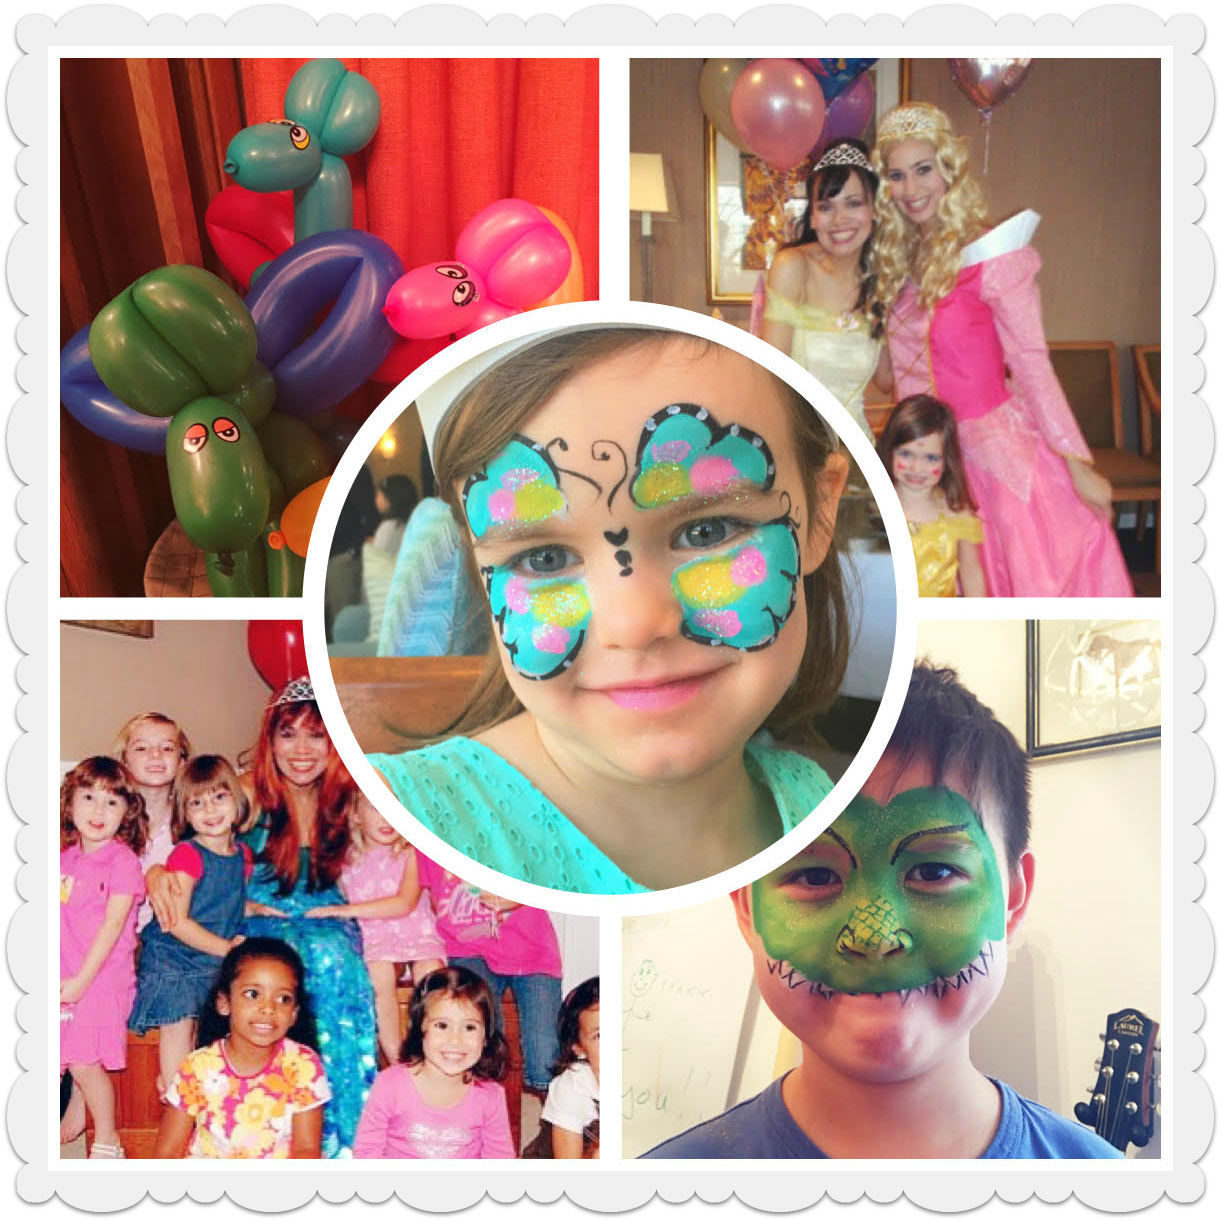 childrens party entertainment face painting, balloon art, princesses clown kids birthday Ariel, Belle, Elsa, Anne, Sleeping Beauty NYC Manhattan Upper West Side Upper East Side Tribeca Chelsea Midtown LIC Soho parties and events